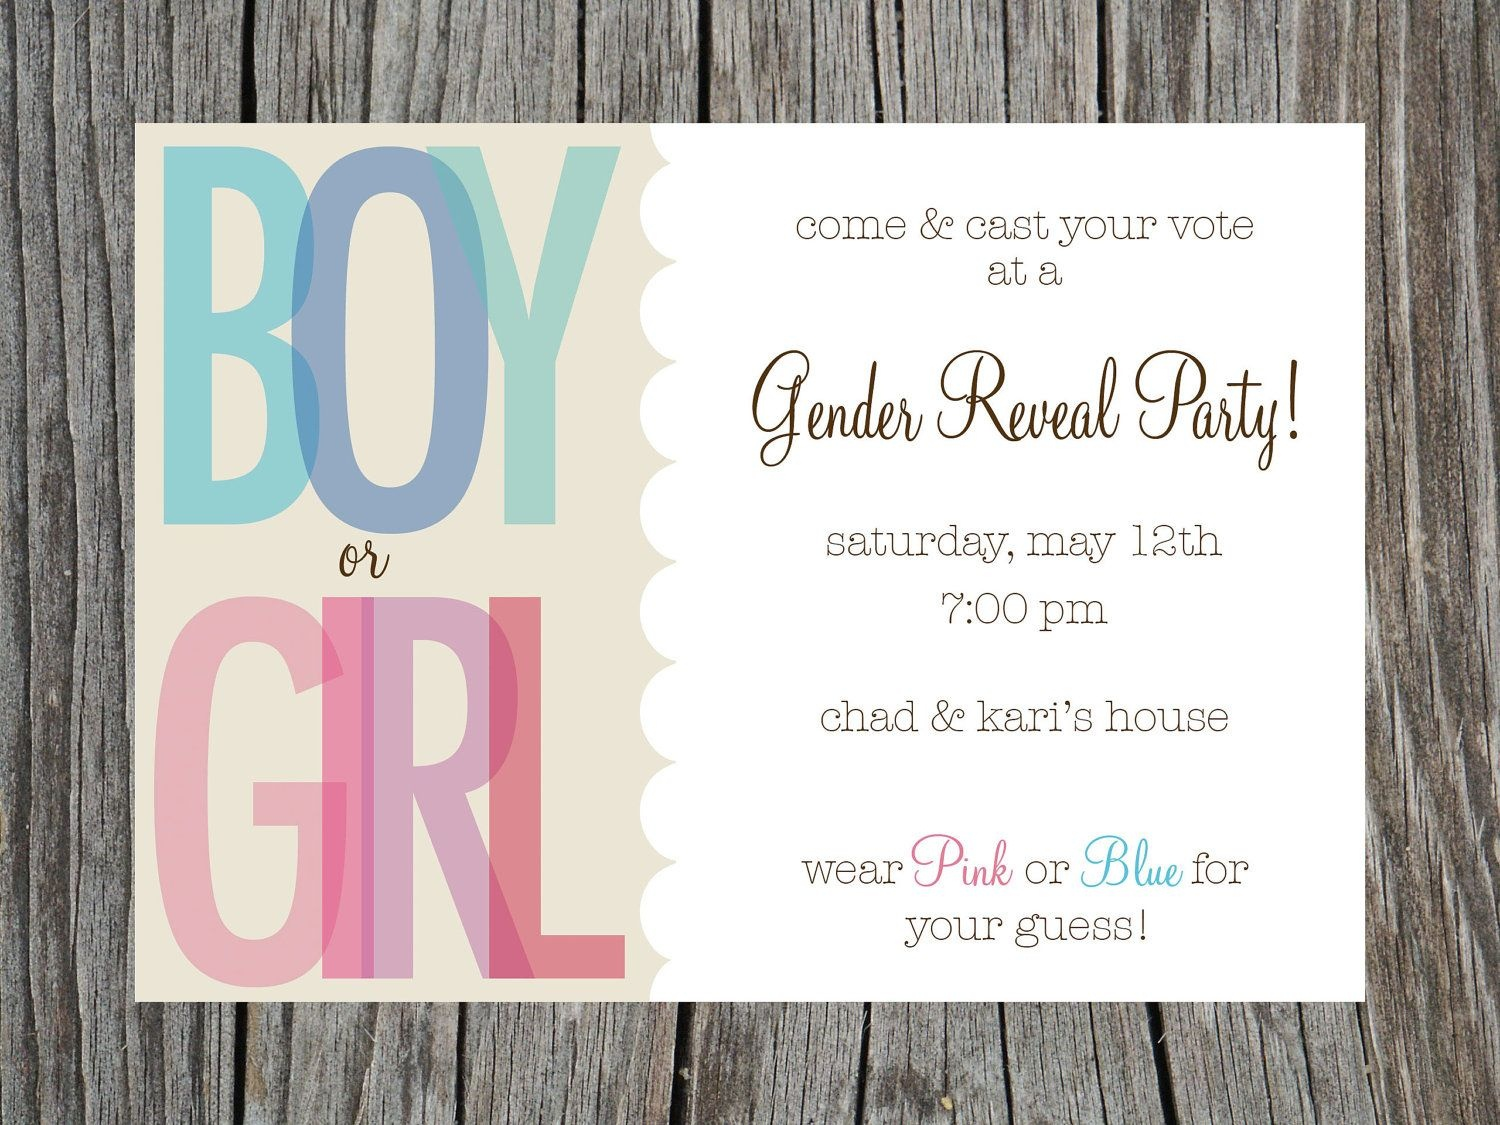 Gender Reveal Party Invitations Free Templates | Invitstiondown - Free Printable Gender Reveal Invitations